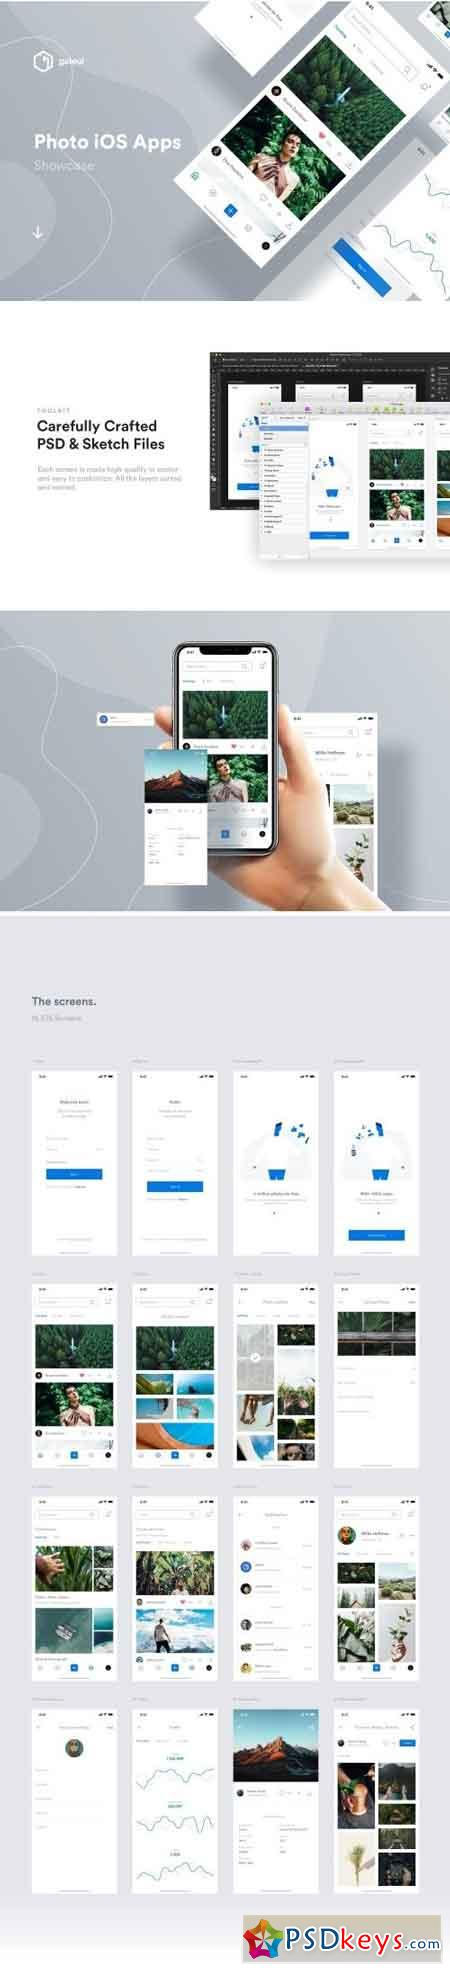 Photo iOS UI Kit 2464536